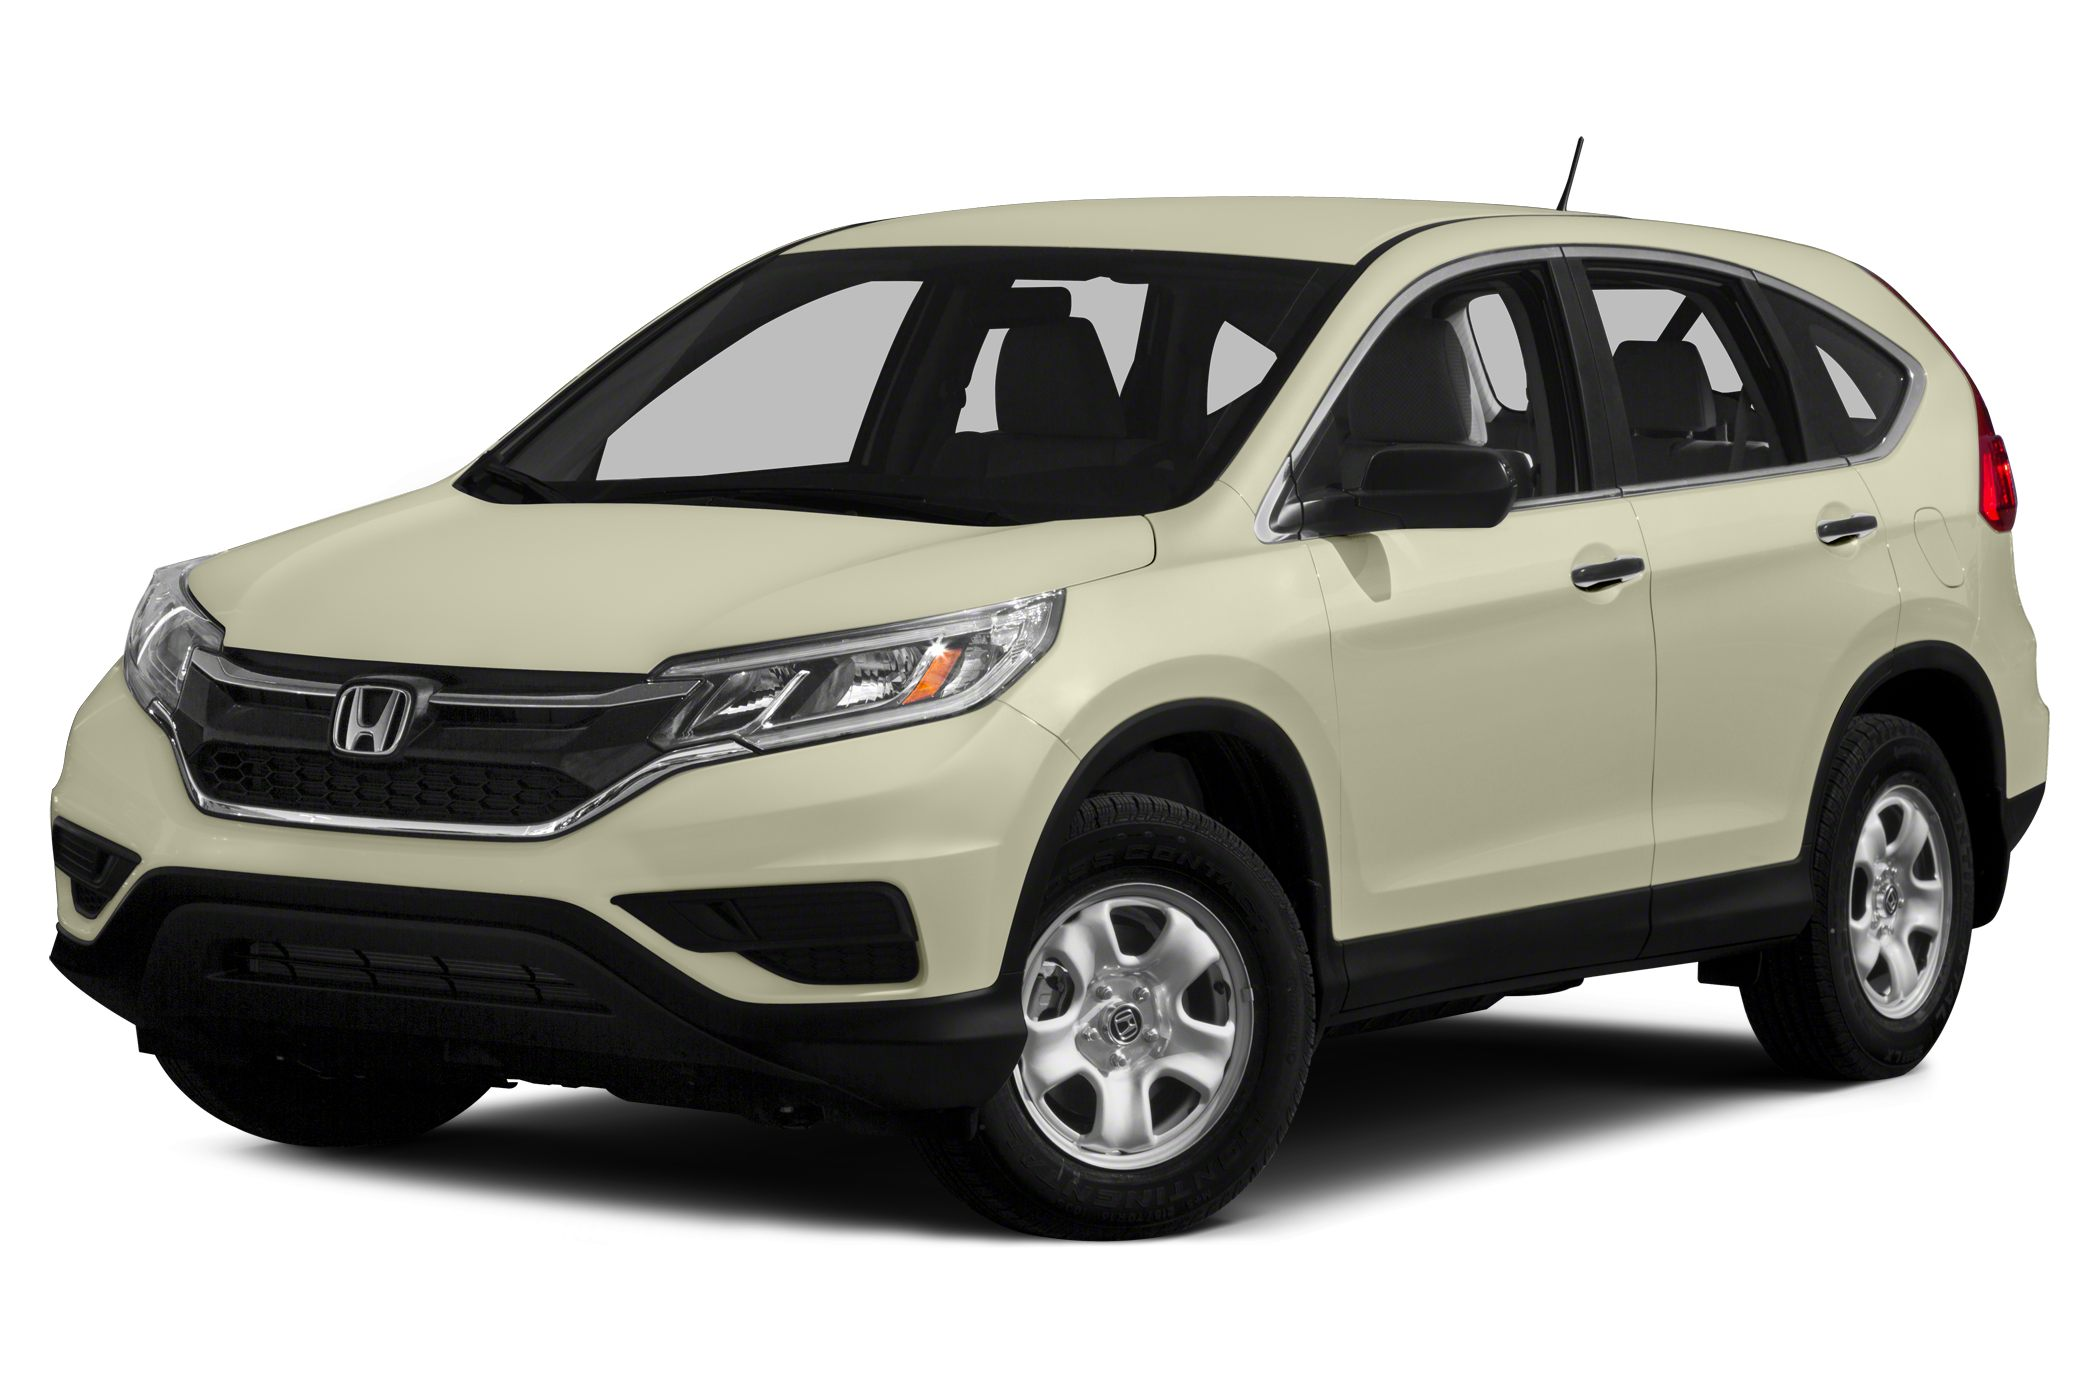 2015 Honda CR-V LX SUV for sale in Florida City for $24,325 with 7 miles.